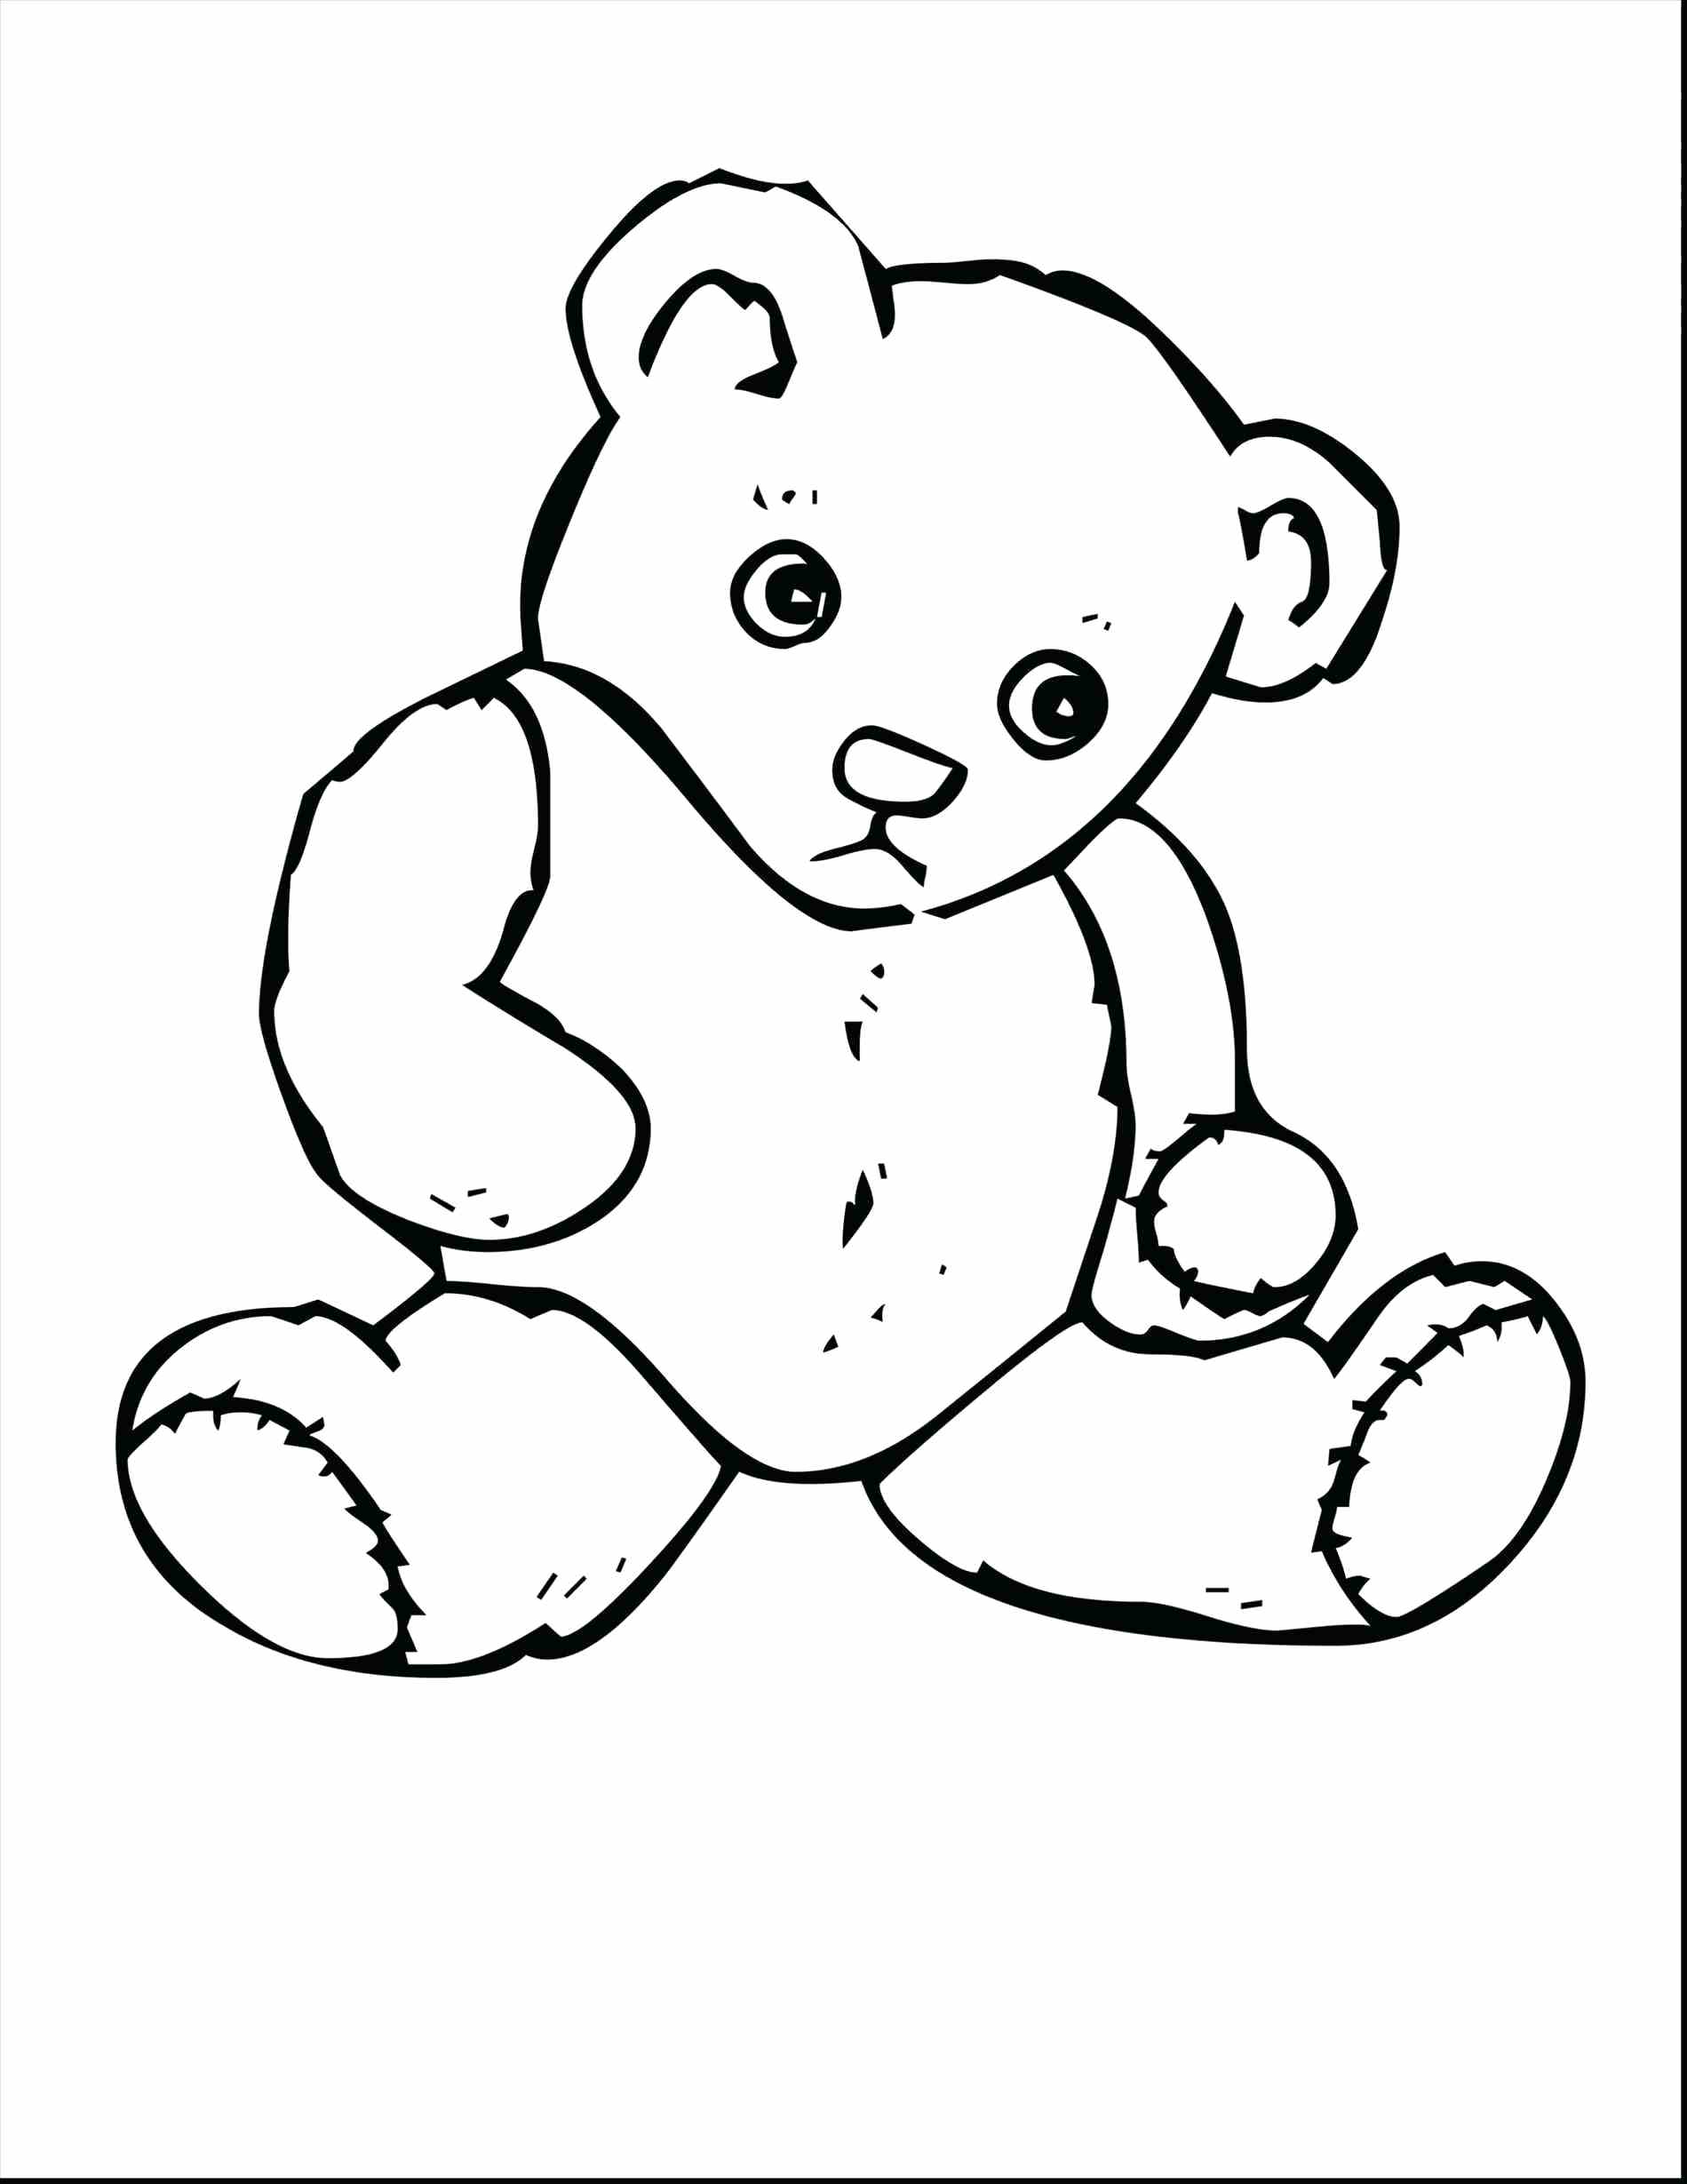 1899x2458 Coloring Teddy Bear With Heart Coloring Pages The Pooh. Teddy